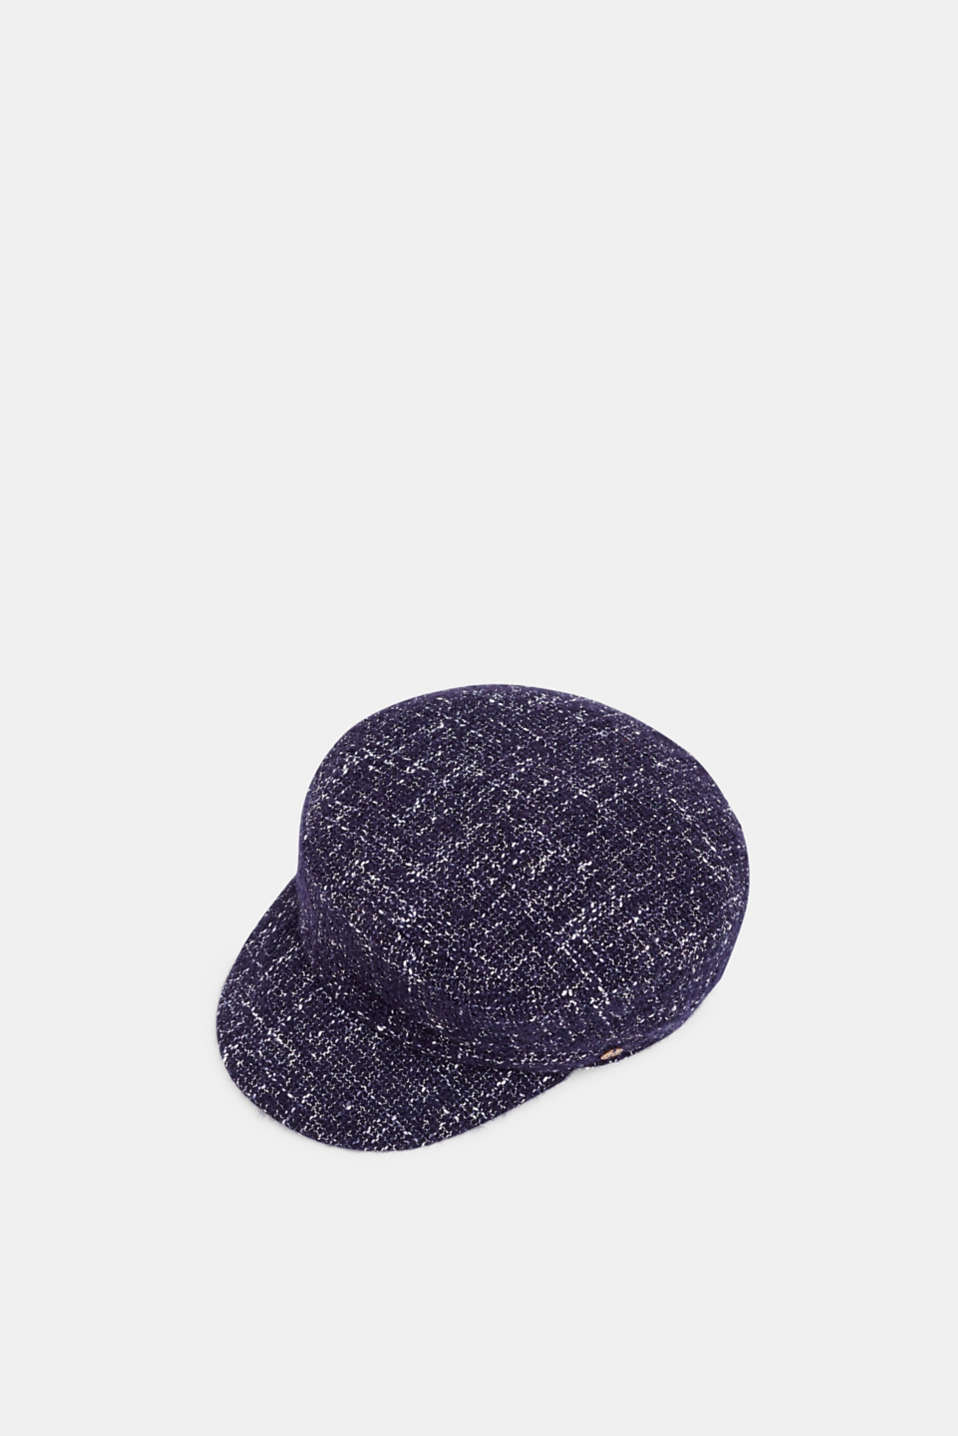 Esprit - Tweed sailor's cap